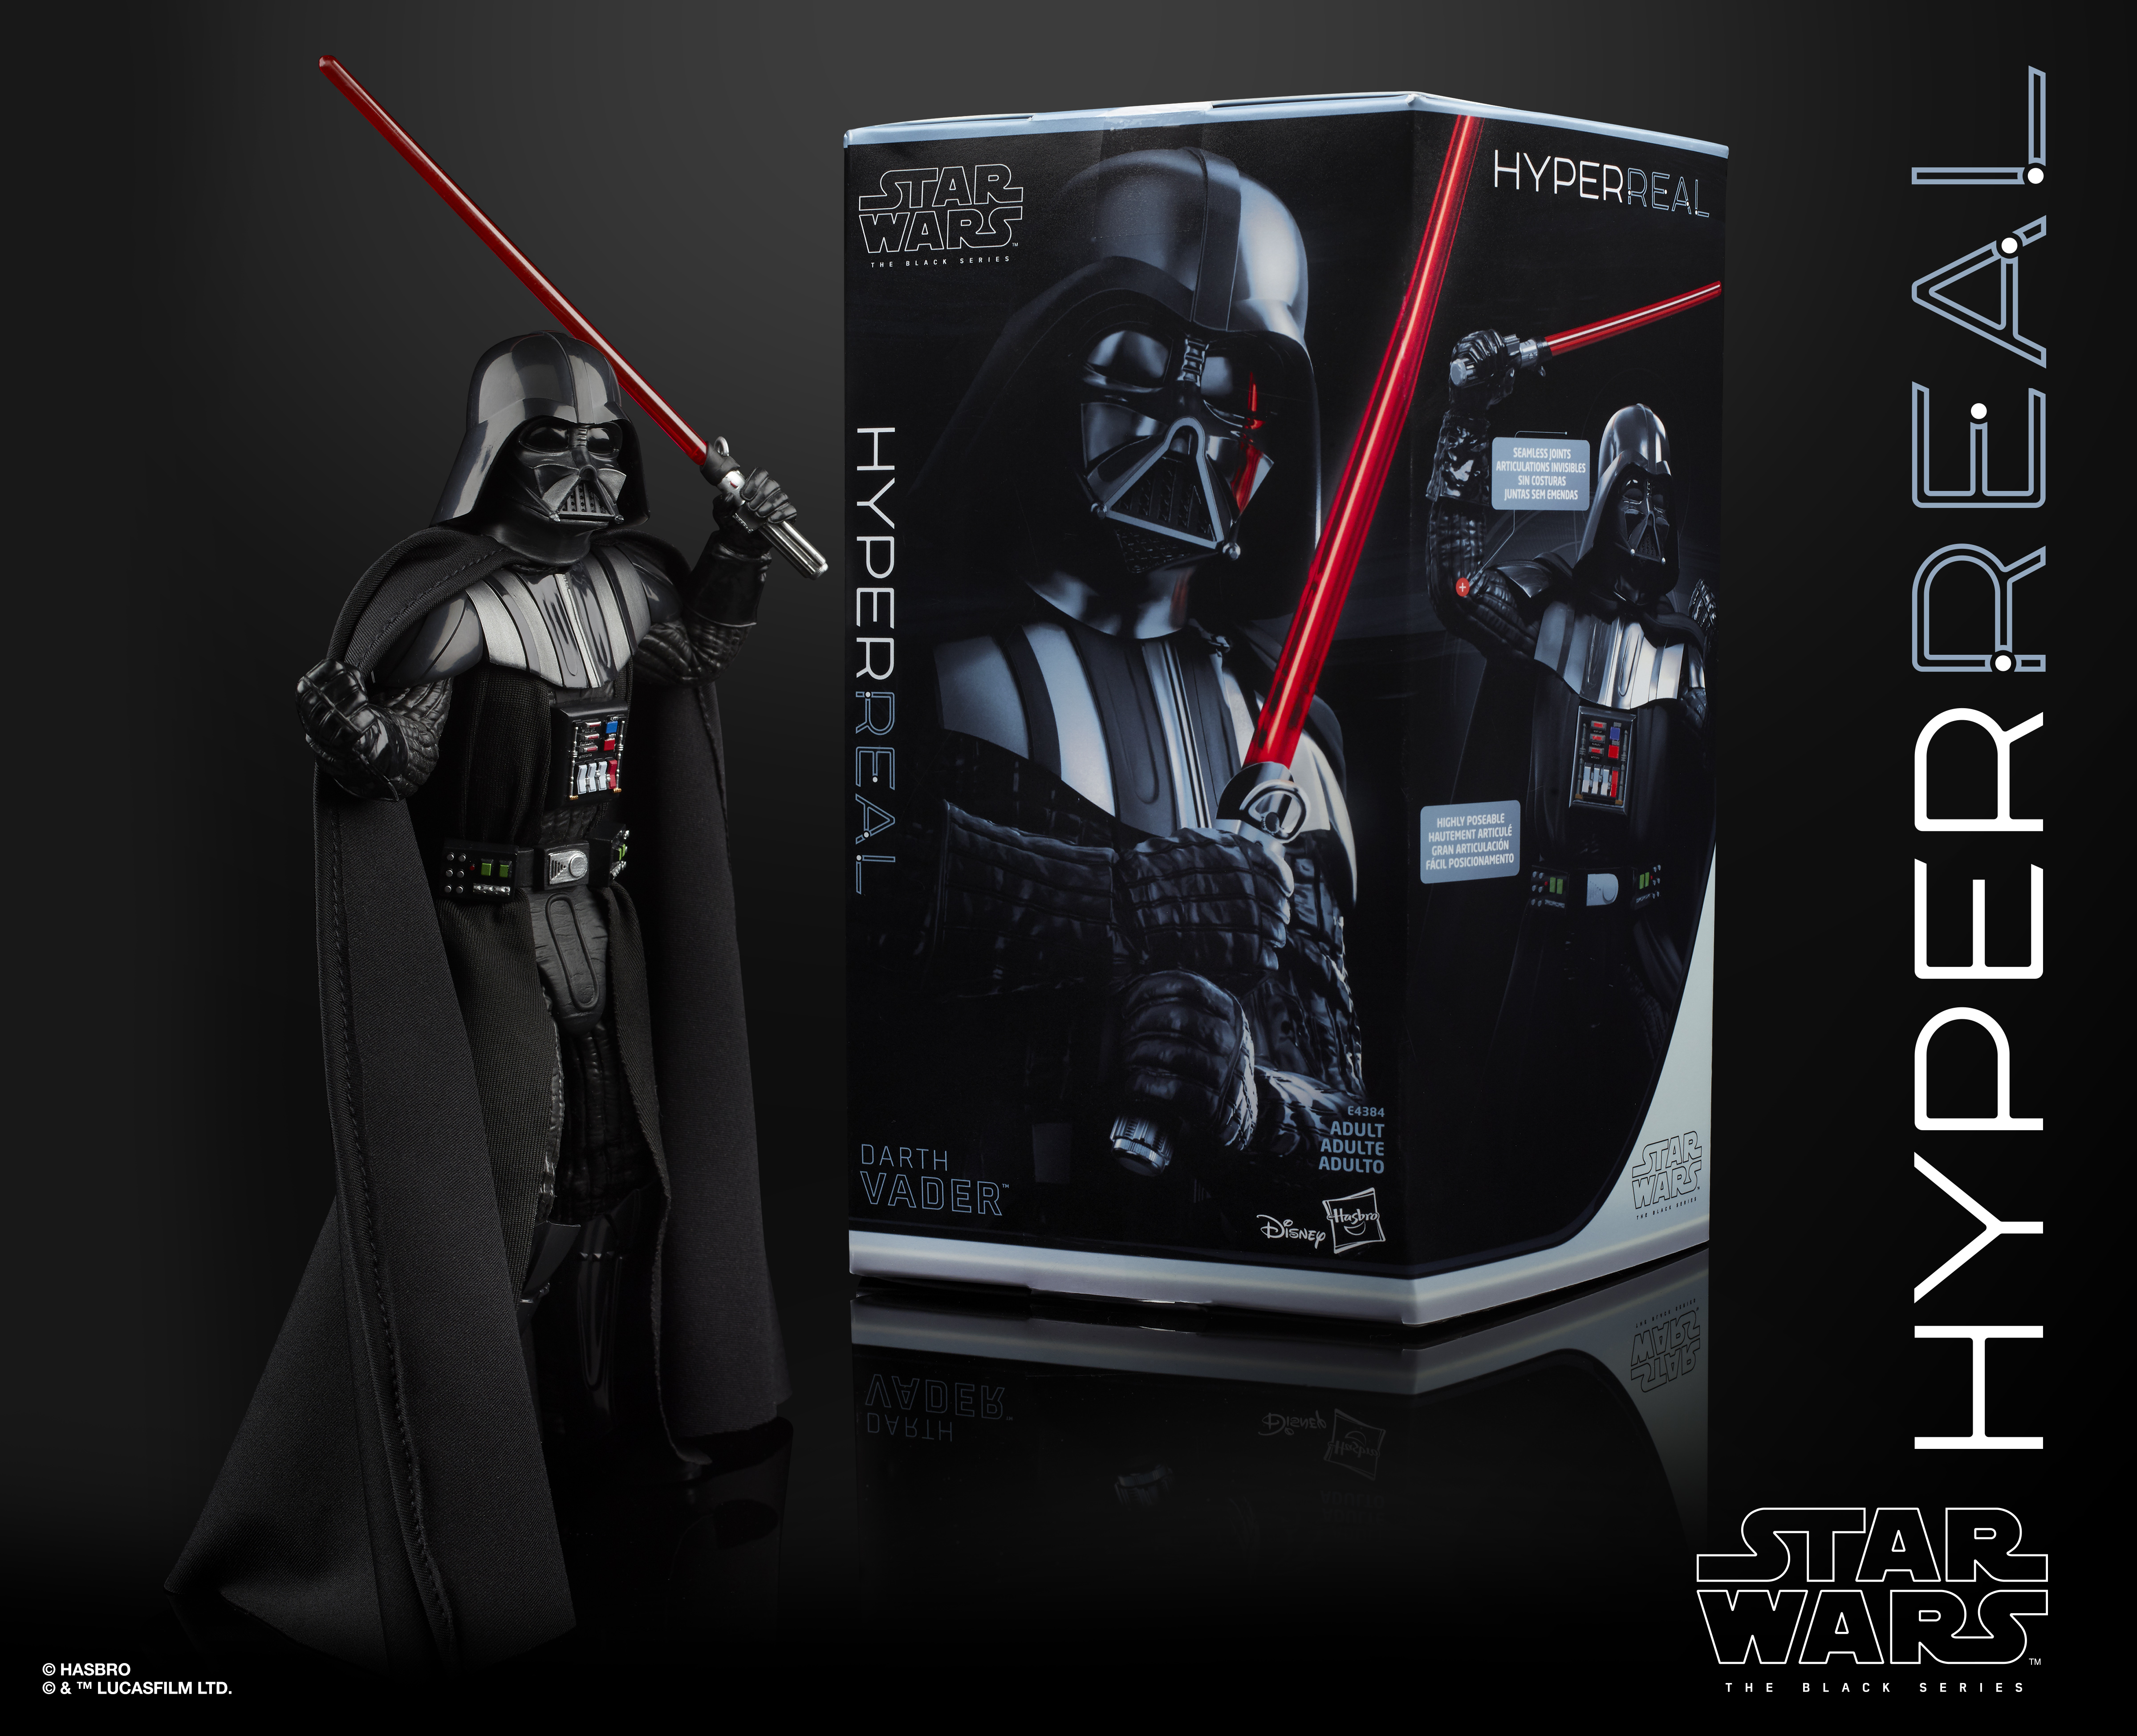 Star Wars Hyperreal Darth Vader oop (6)